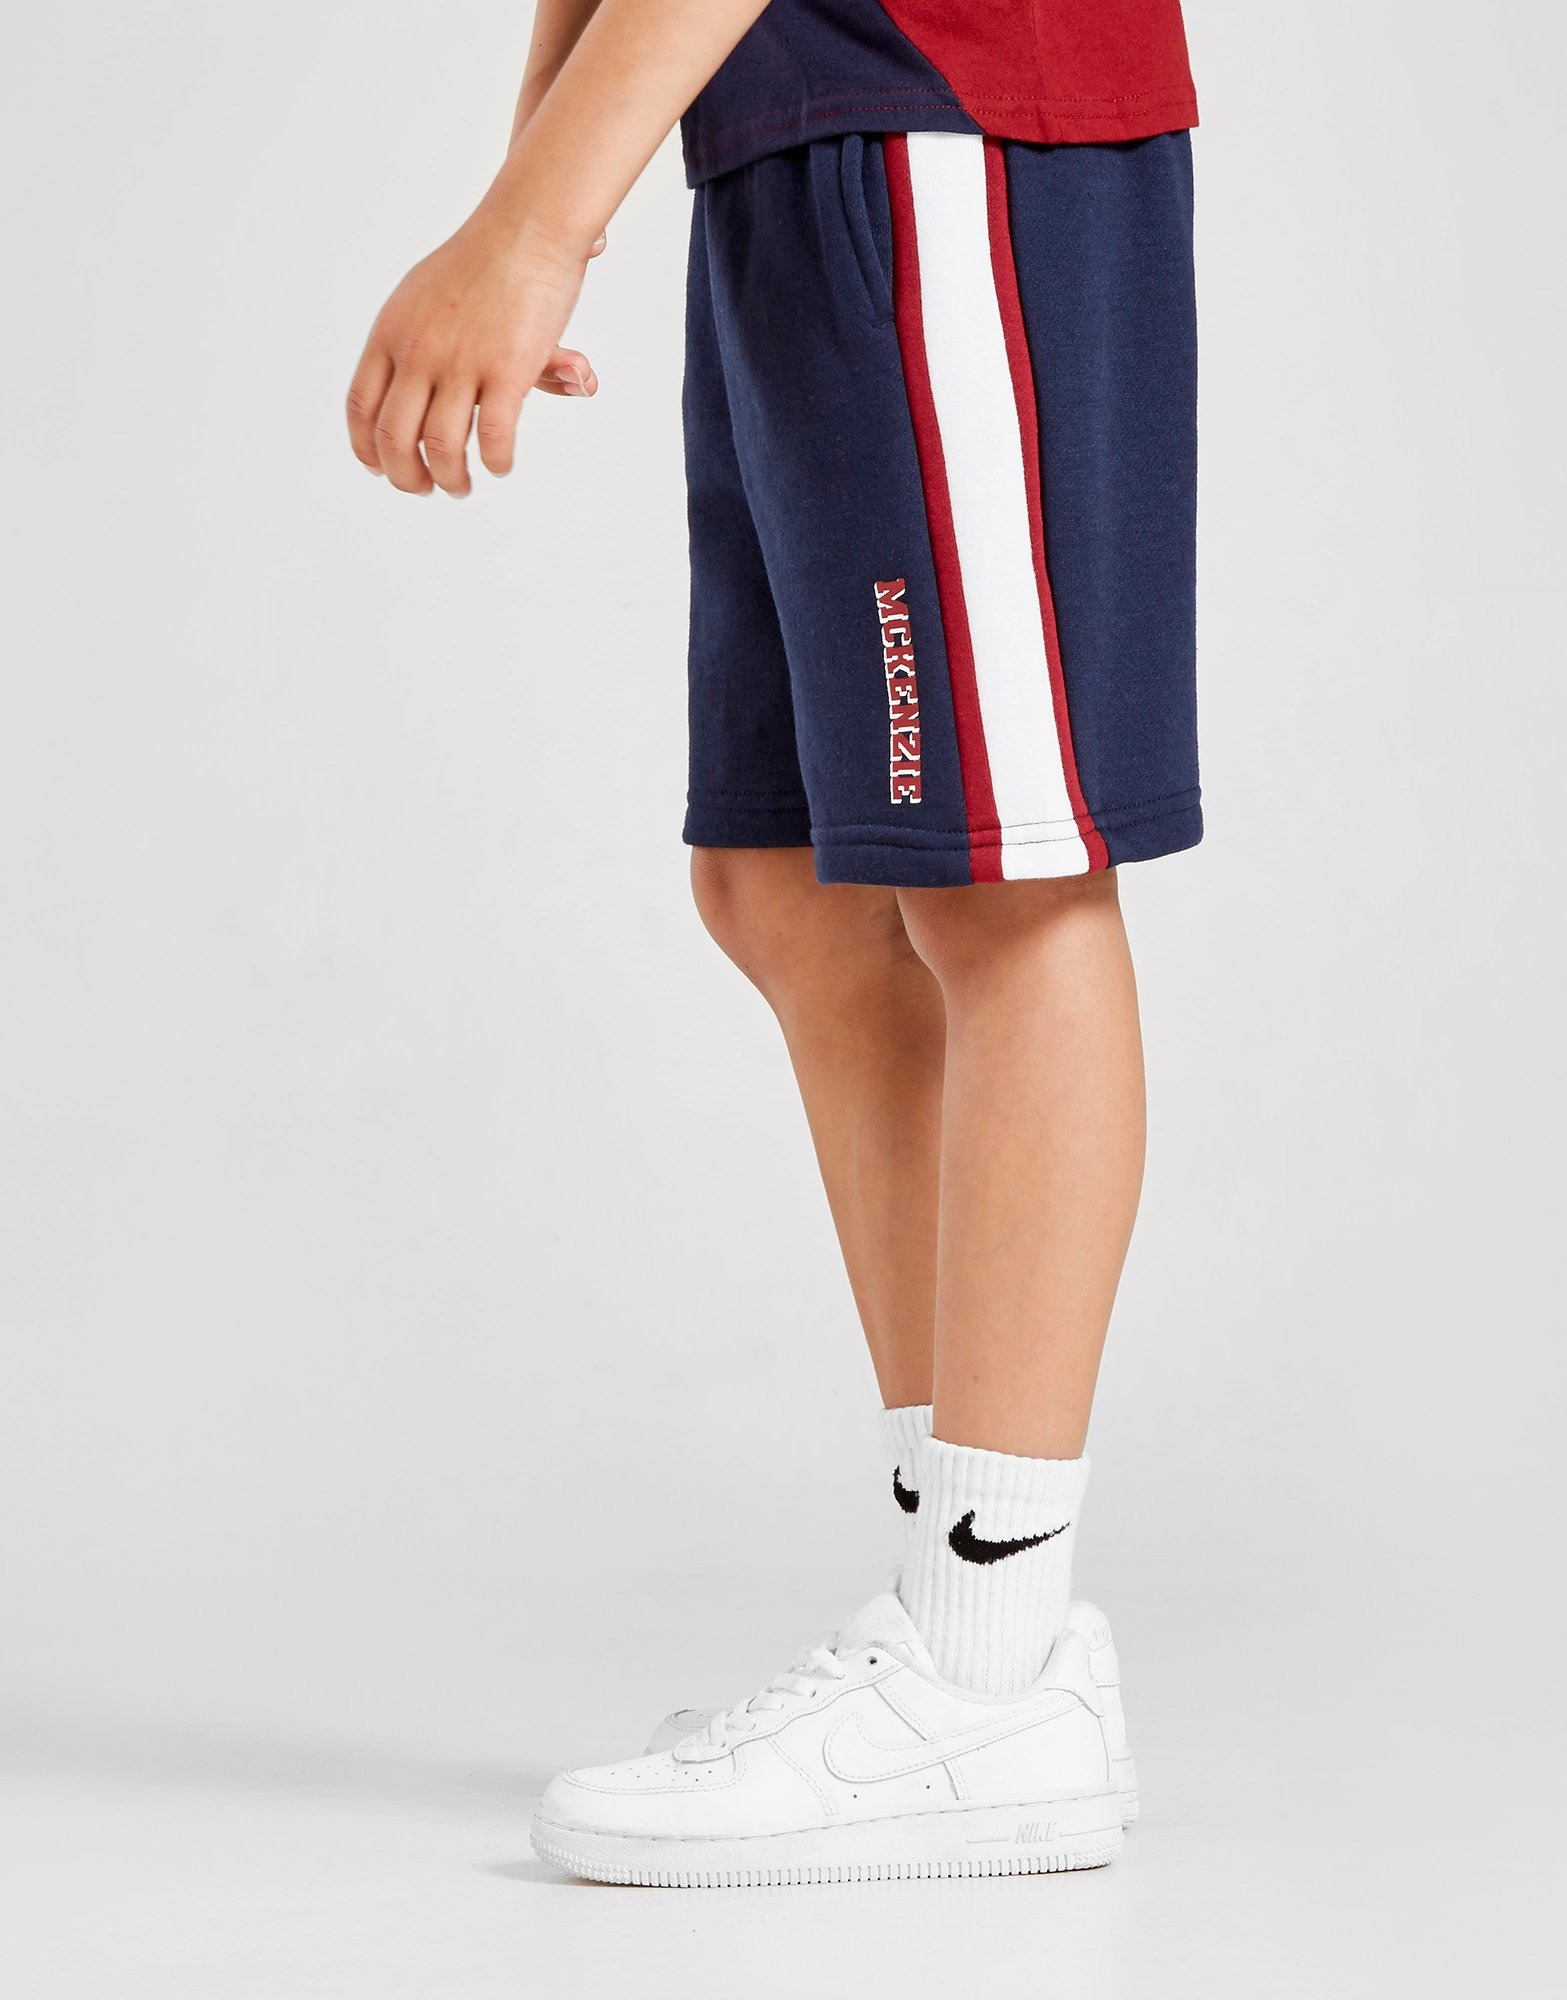 New McKenzie Kids' Mini Faustin Shorts